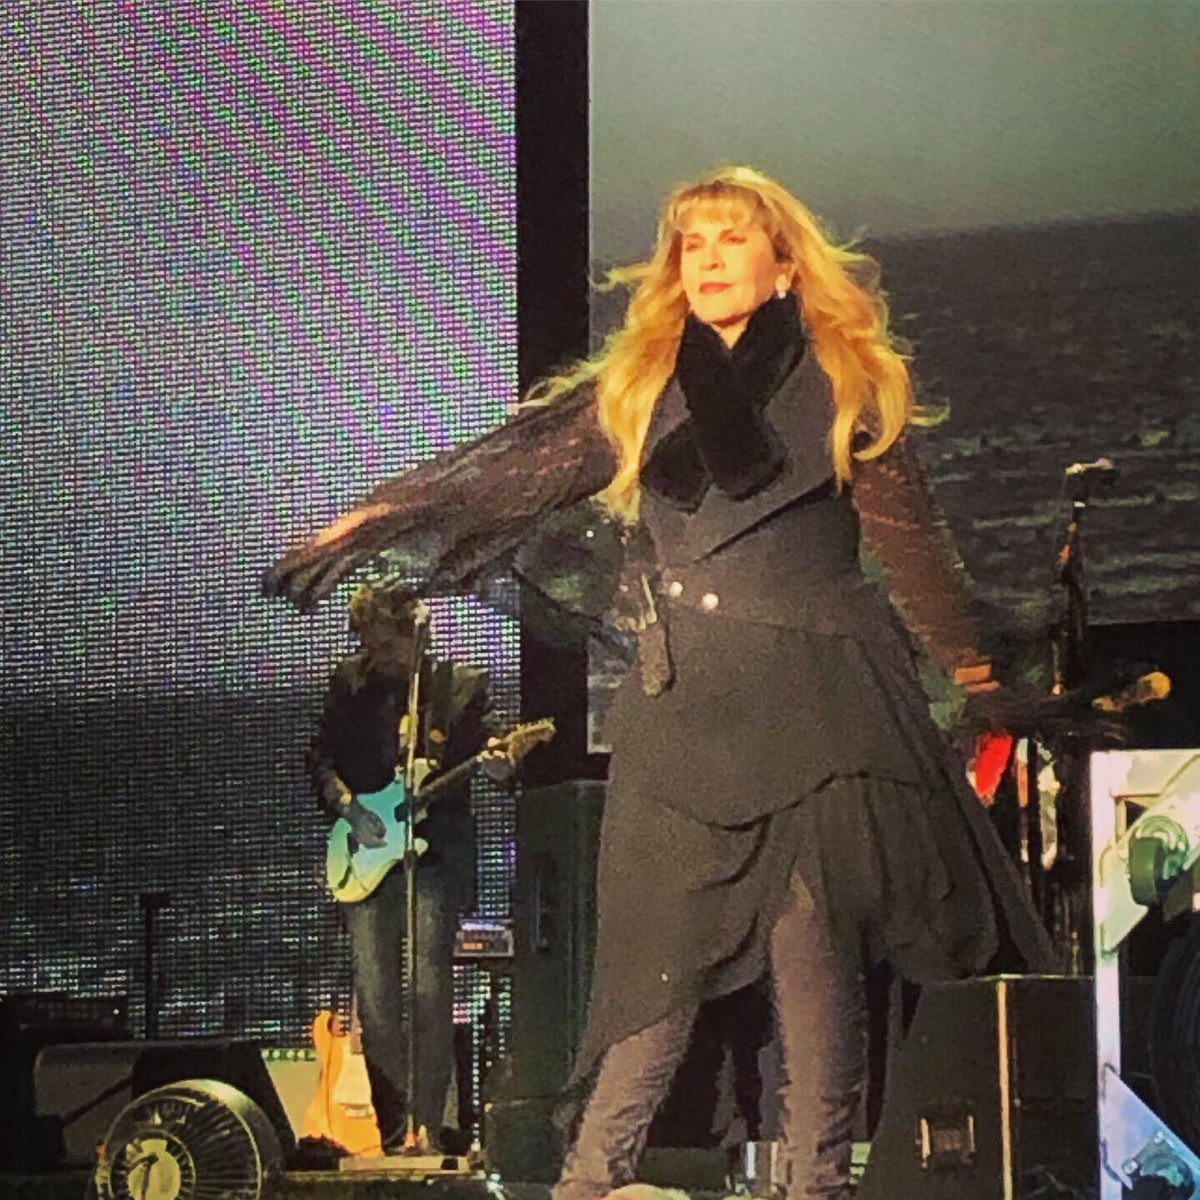 I'll be your gypsy #goddessincarnate #lifeisincredible #dreams @fleetwoodmac #DF19 @Dreamforce #Dreamfestpic.twitter.com/lXgRZaviLC